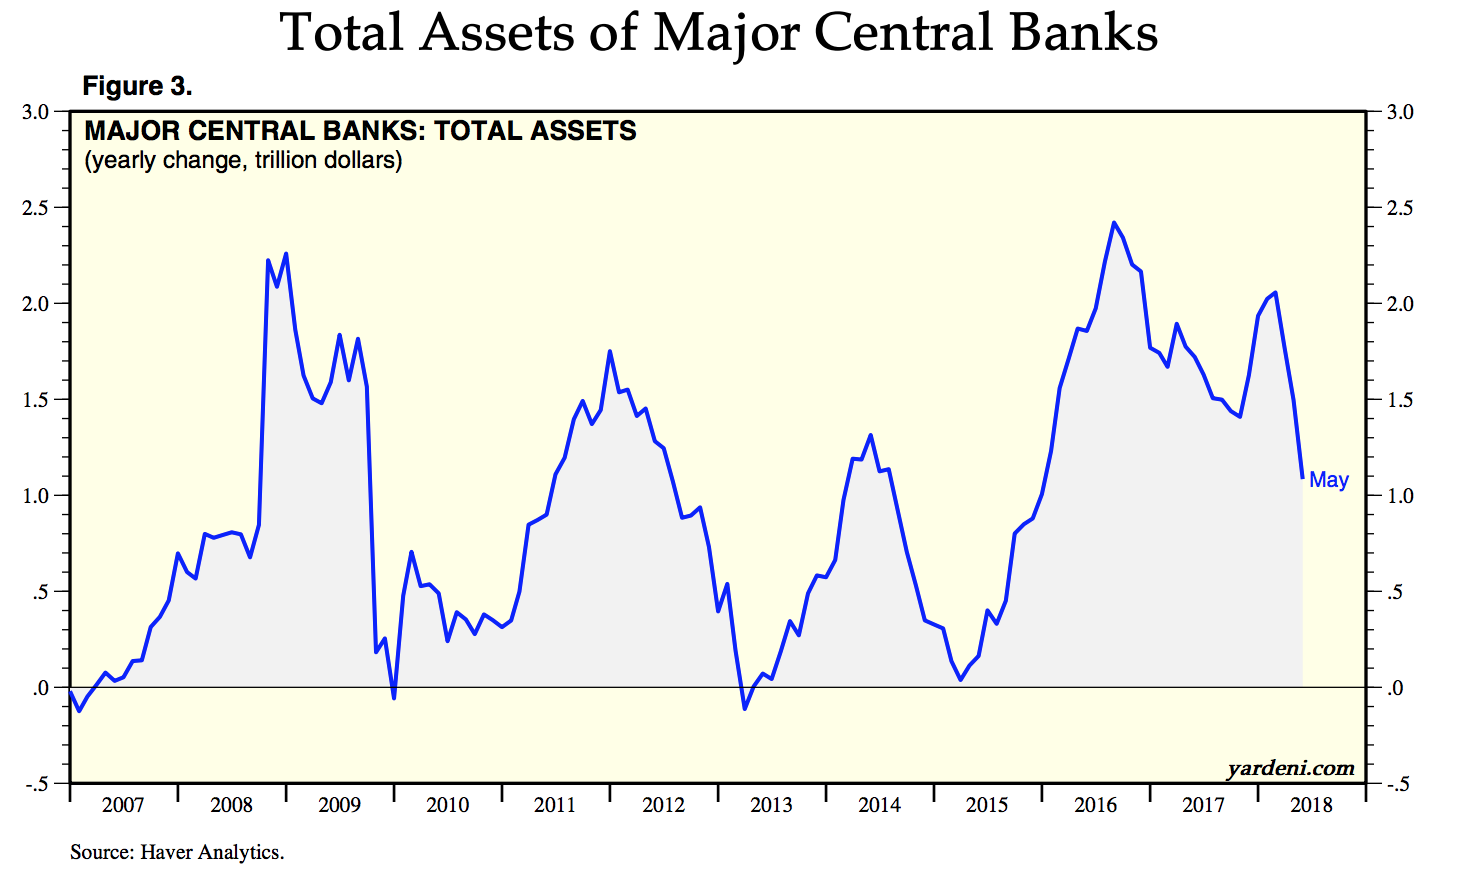 Total Assets Of Majro Central Banks